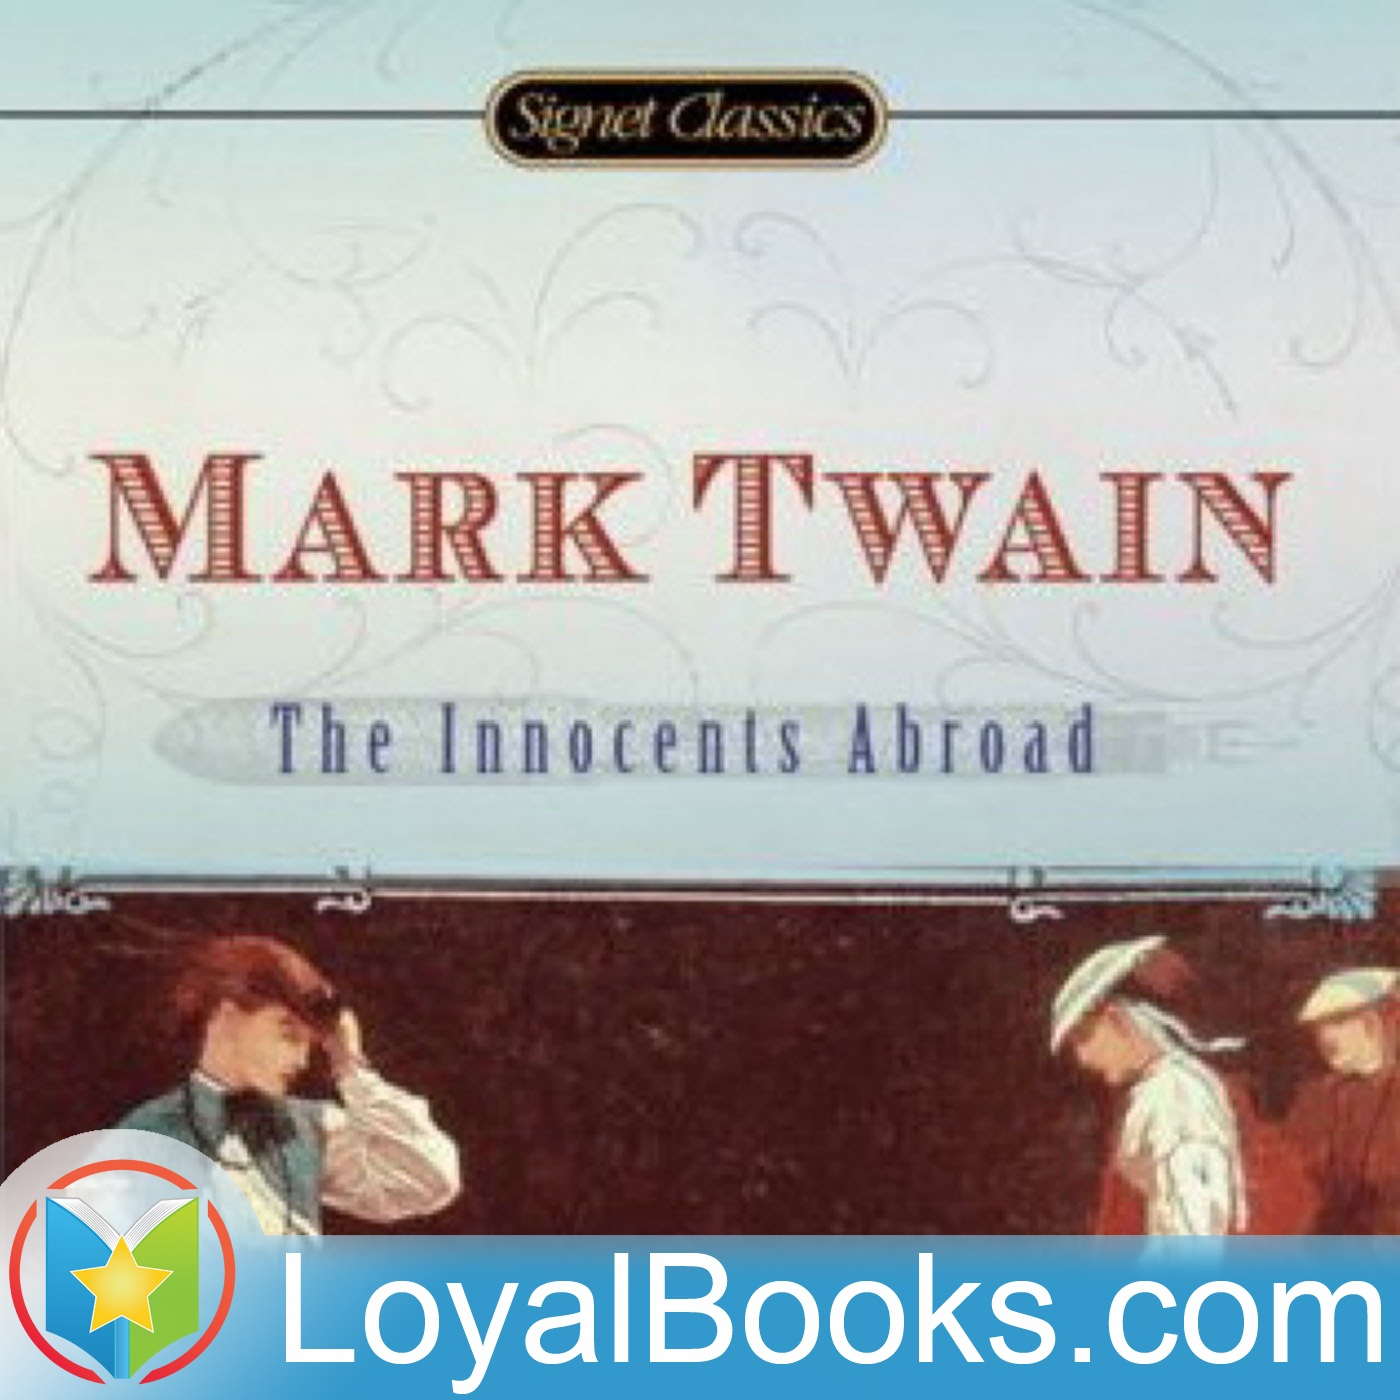 <![CDATA[The Innocents Abroad by Mark Twain]]>